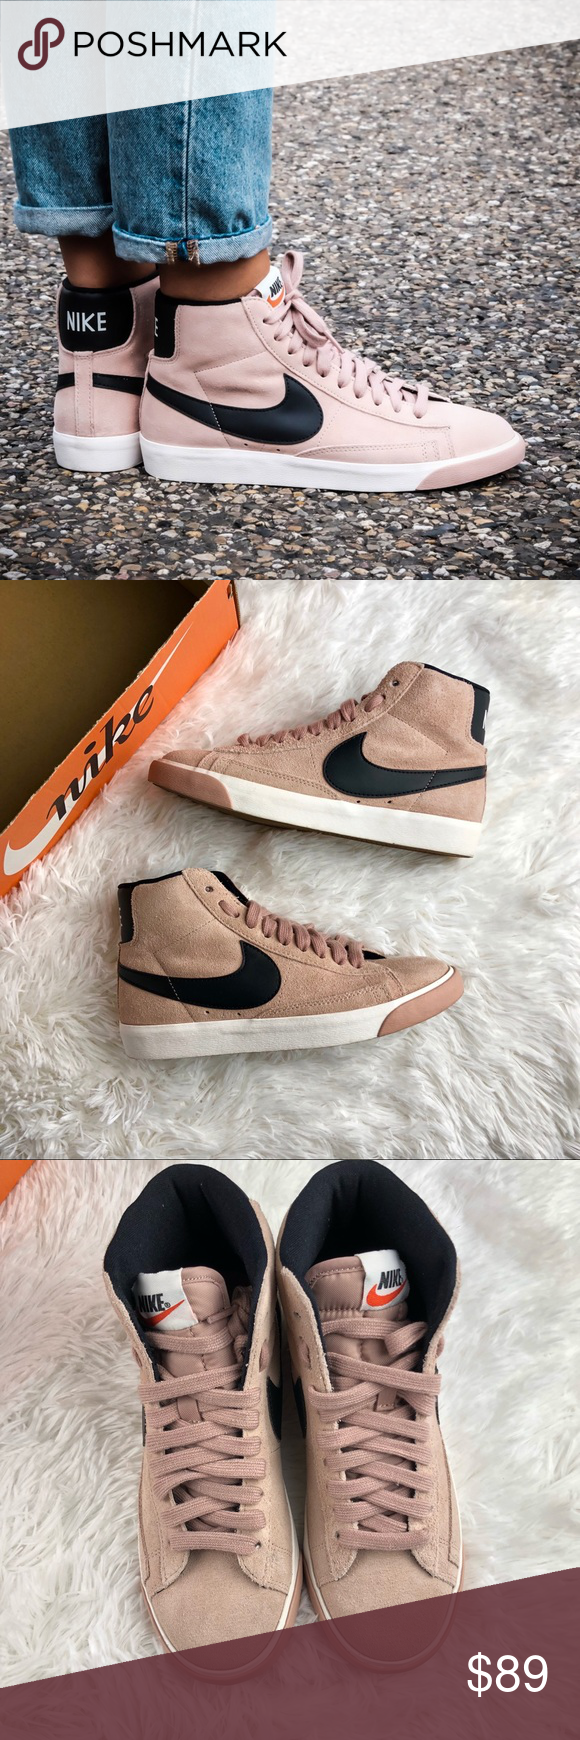 Women s Nike Blazer Mid Vintage Suede Brand new with the box but no lid  Color is particle pink (looks more blush color in person) Nike Shoes  Athletic Shoes 9bdfcbf05